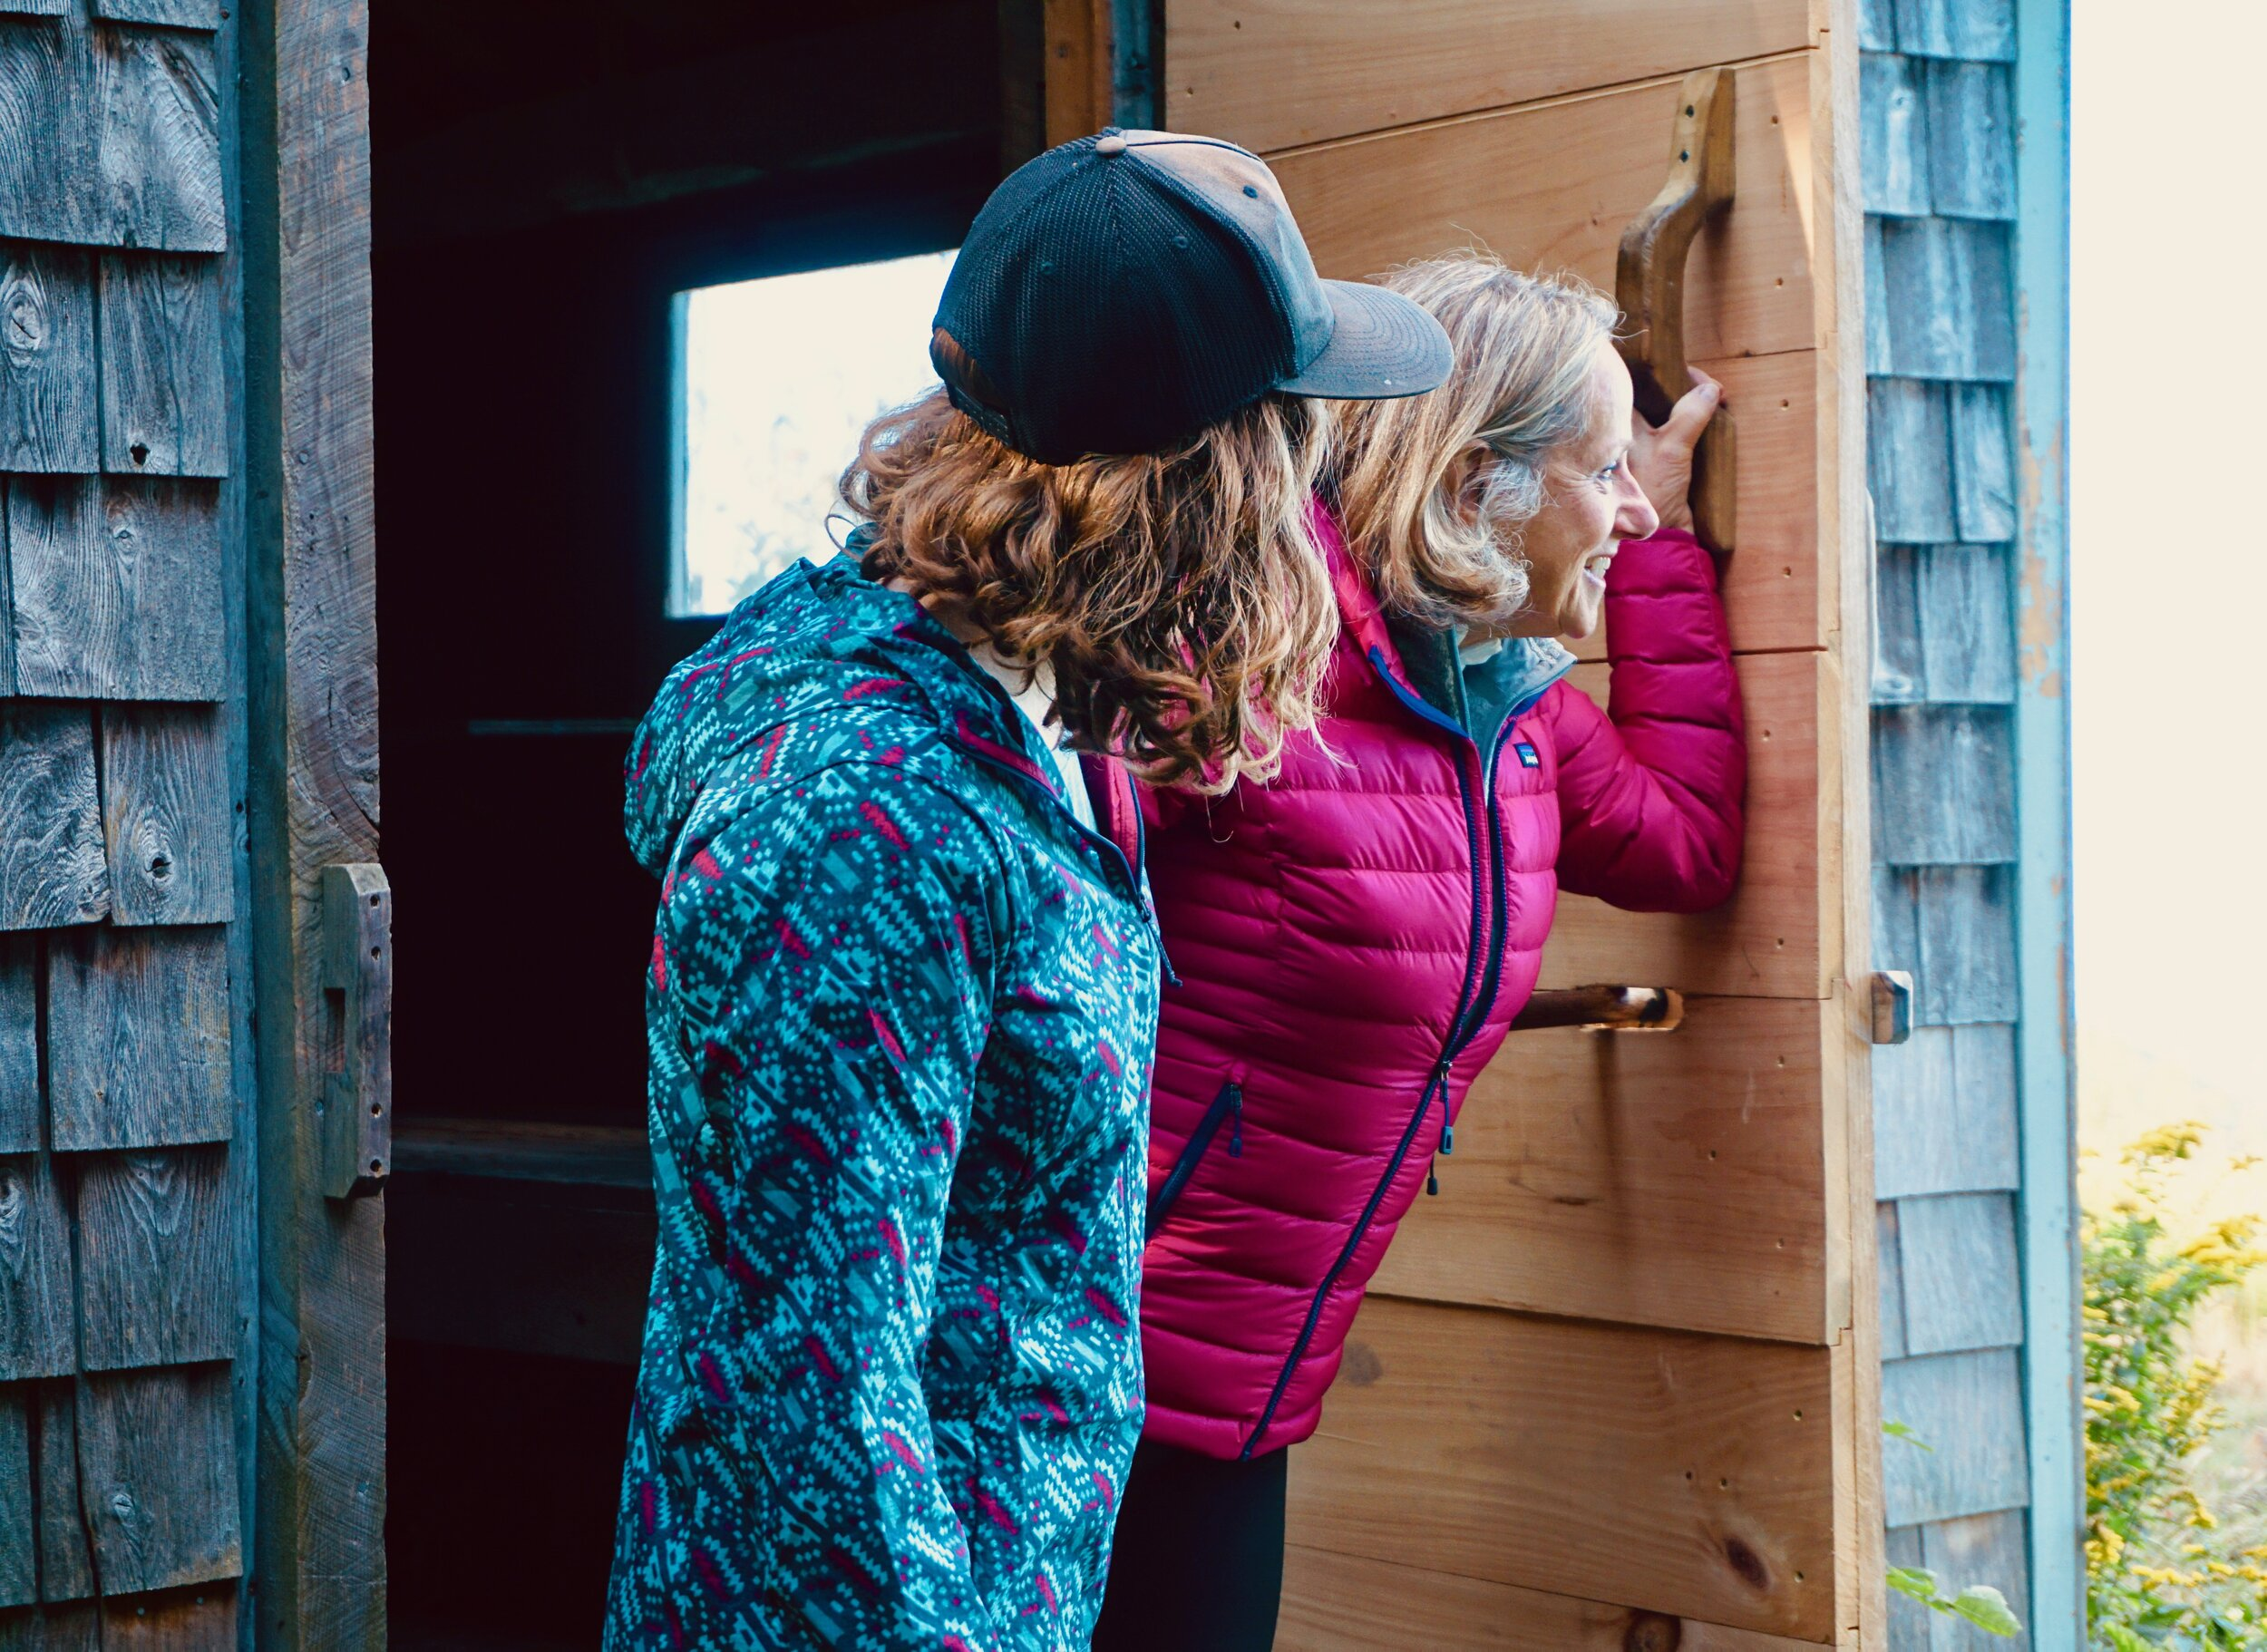 Left to Right: Women's Patagonia Icefall: Smolder Blue Houdini Jacket, Prana Vintage Blue Heather Foundation Long Sleeve Crew Neck (baselayer), and Patagonia Craft Pink Down Sweater